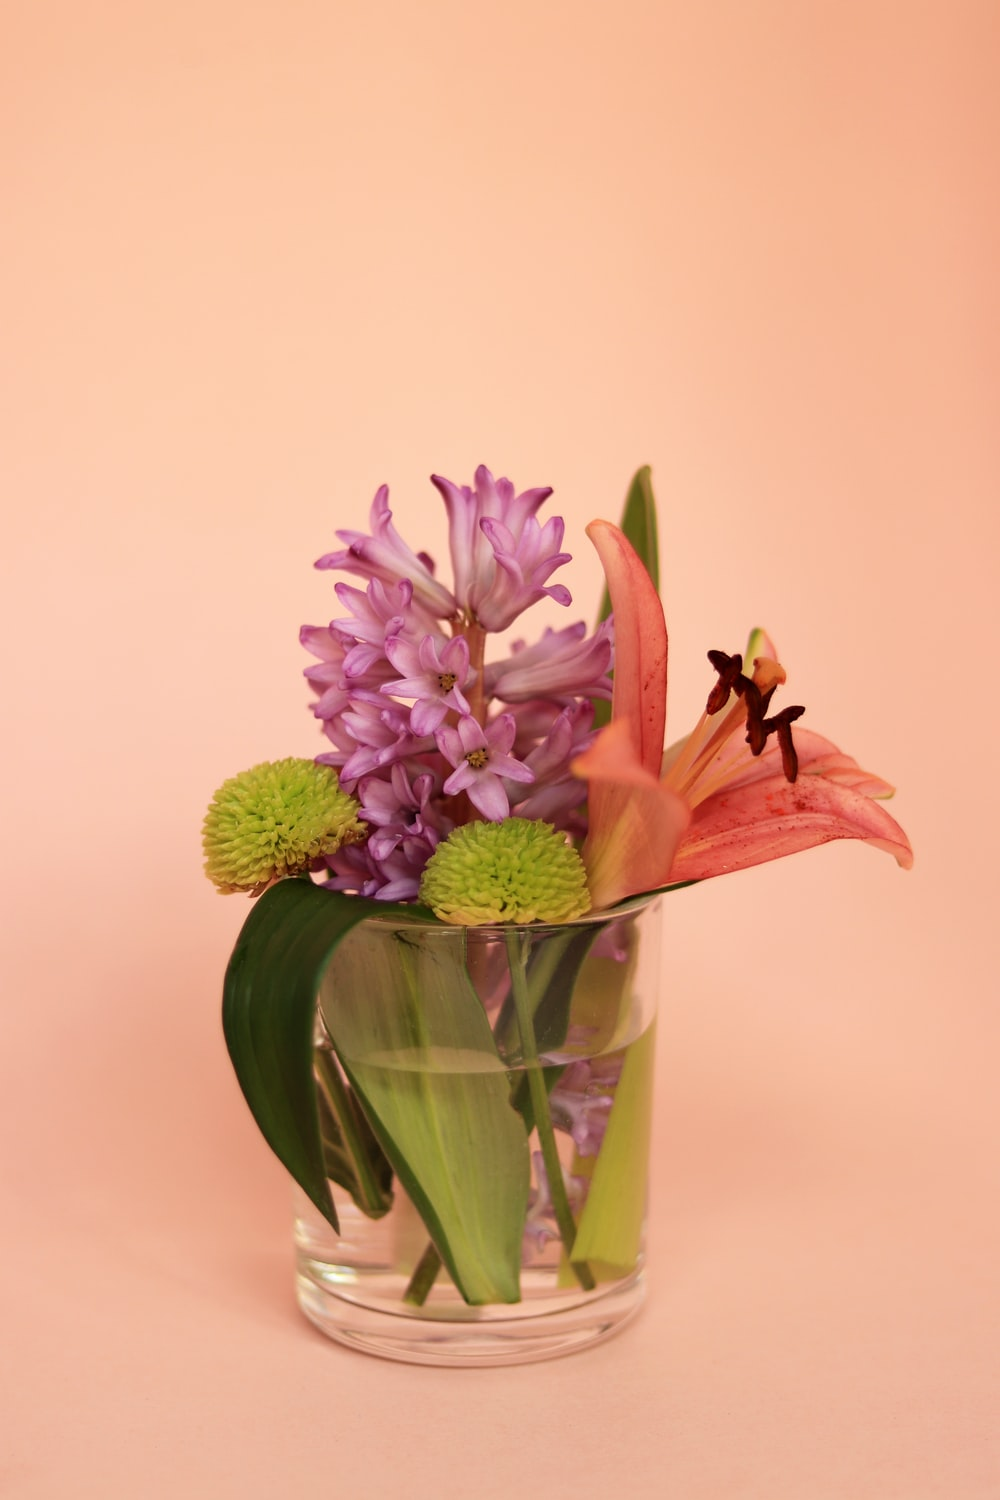 purple and white flower in clear glass vase